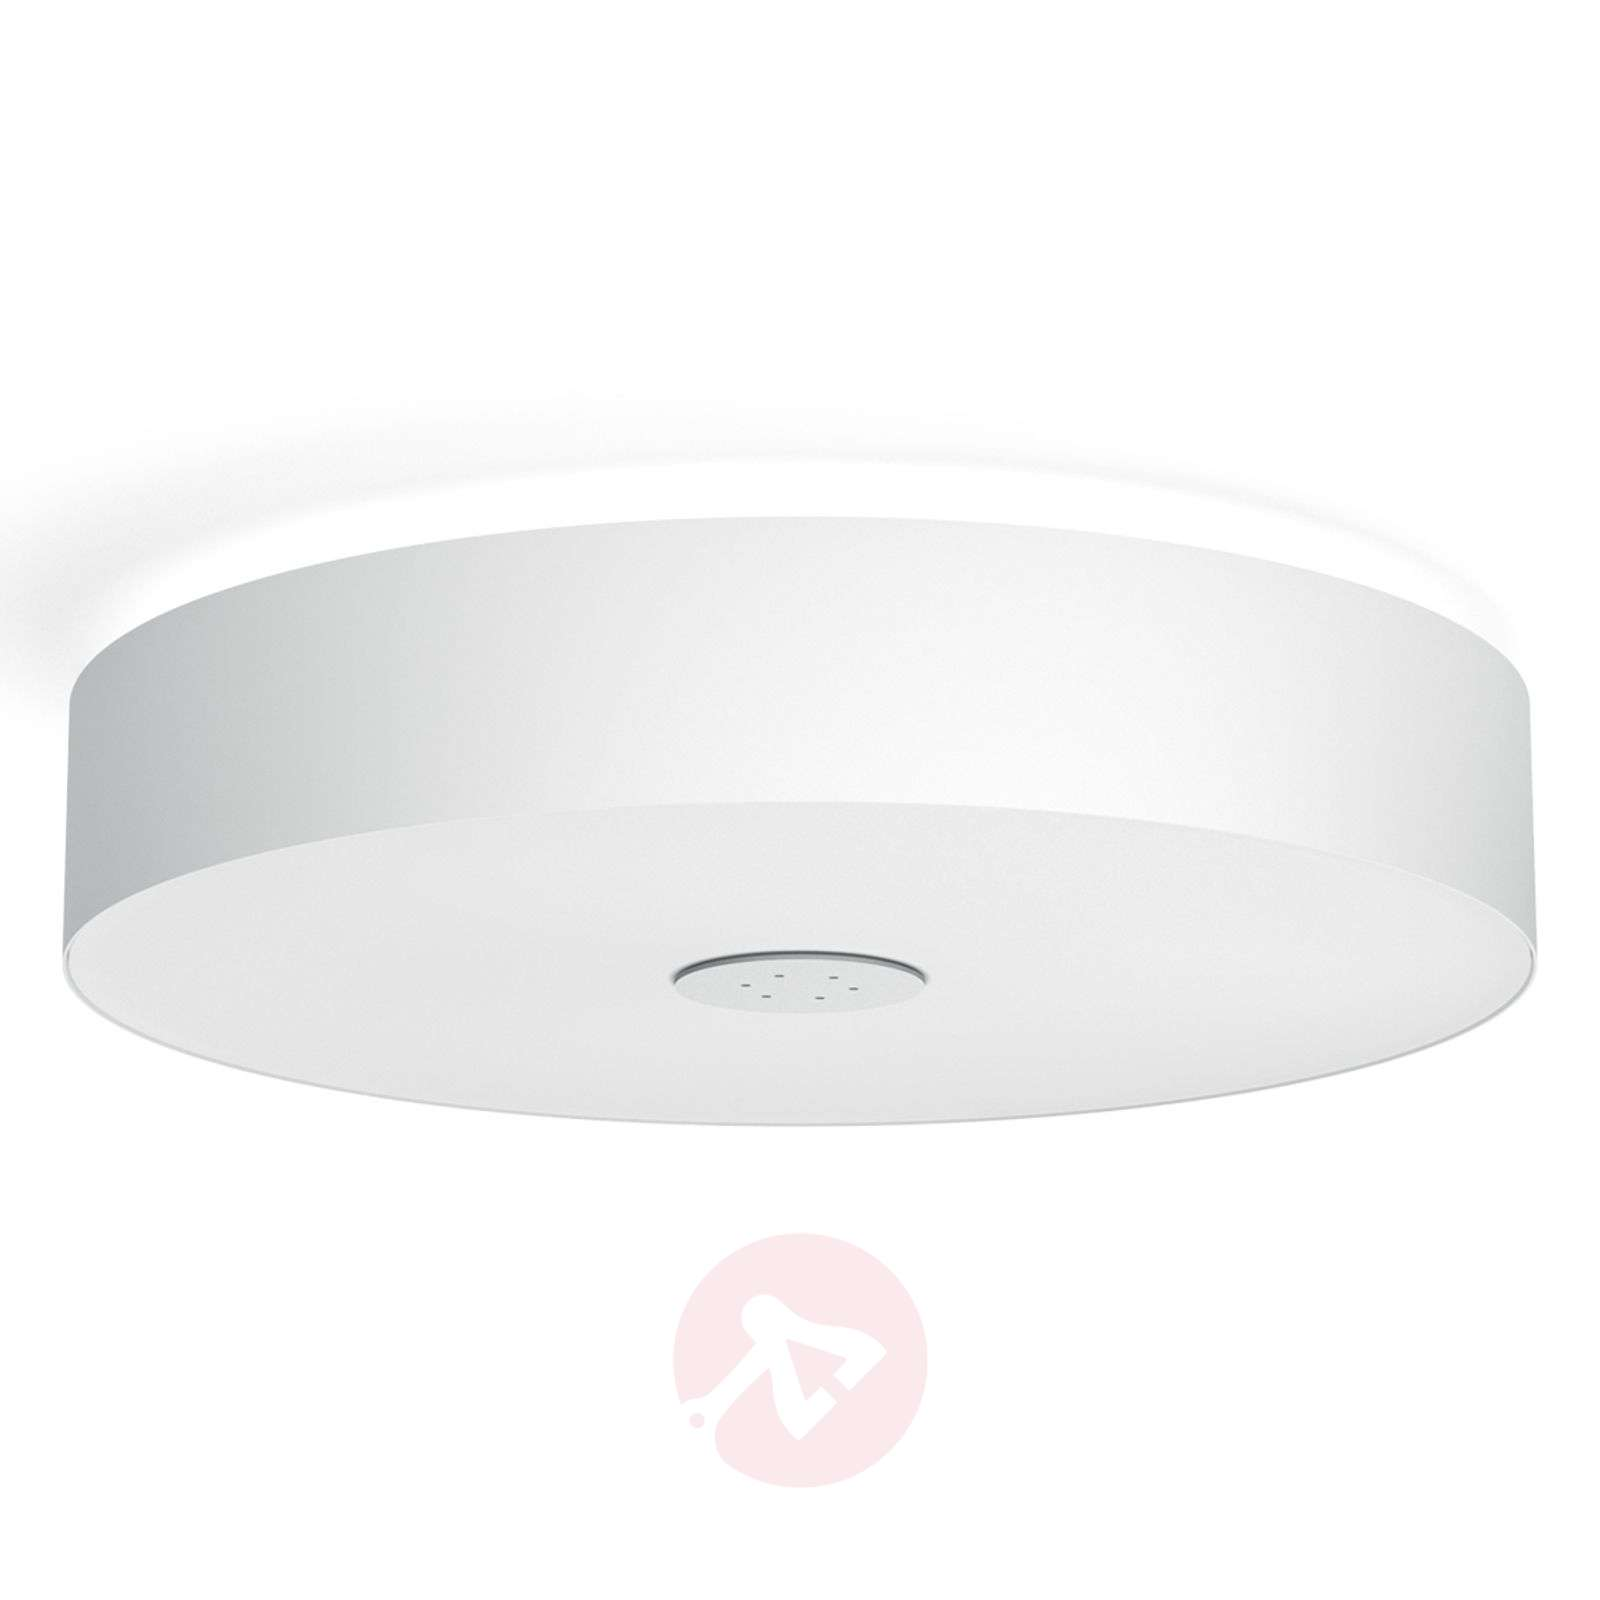 Cool Philips Hue White Ambiance Fair plafondlamp wit | Lampen24.nl MX07